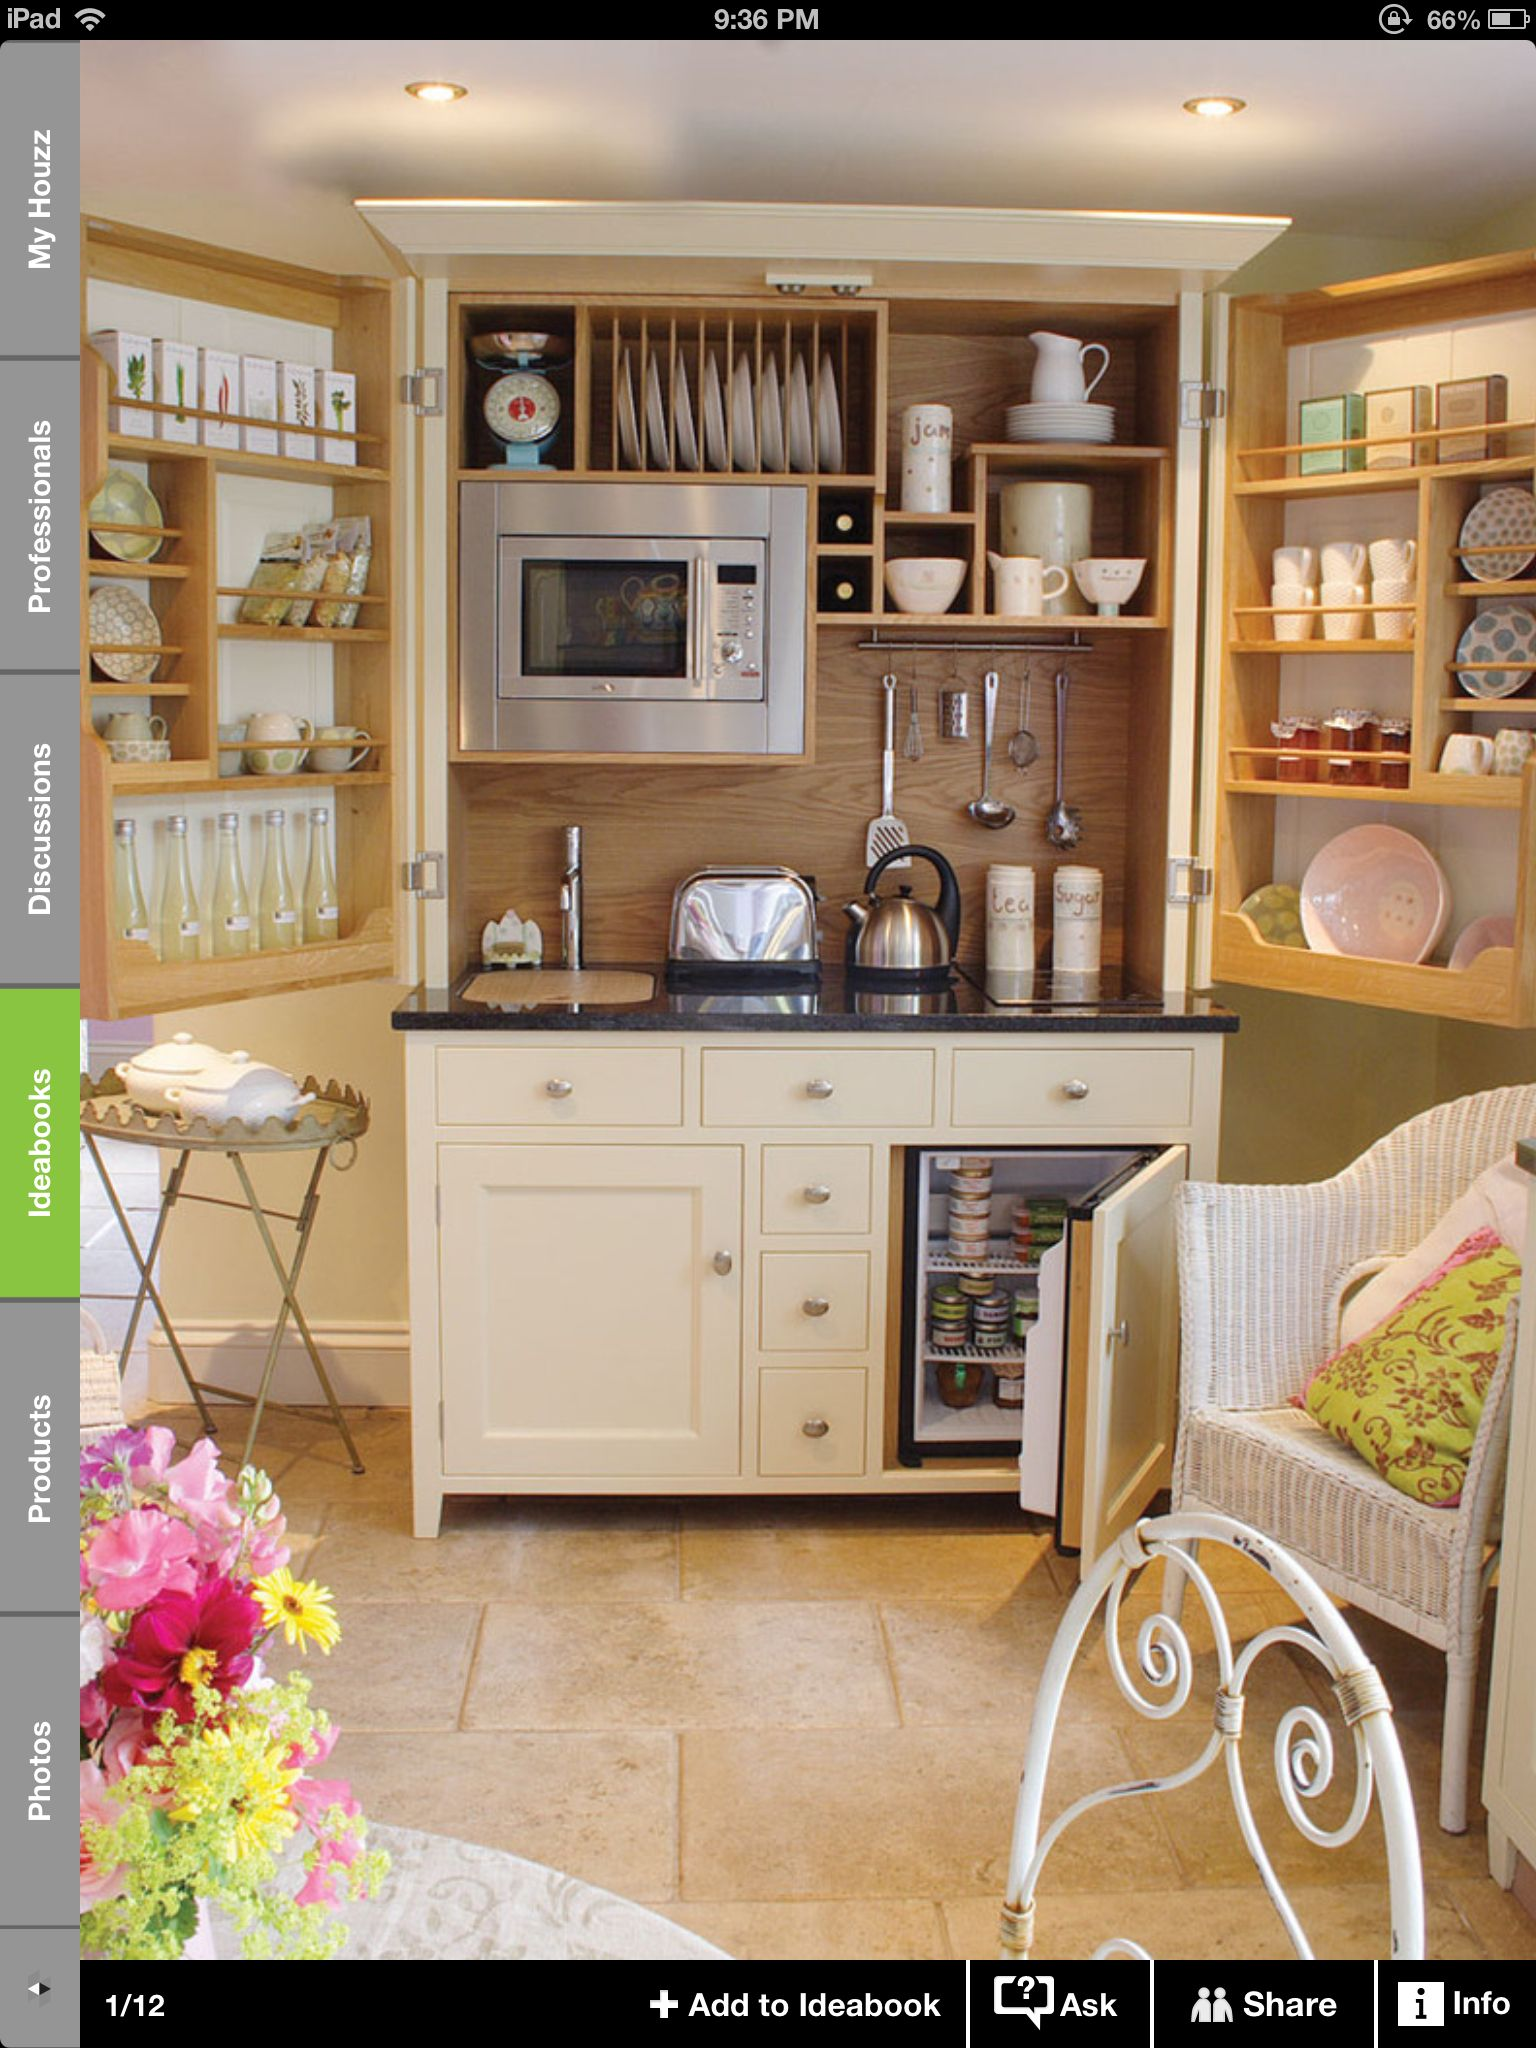 Compact kitchen for garage apartment. | Home Ideas | Pinterest ...